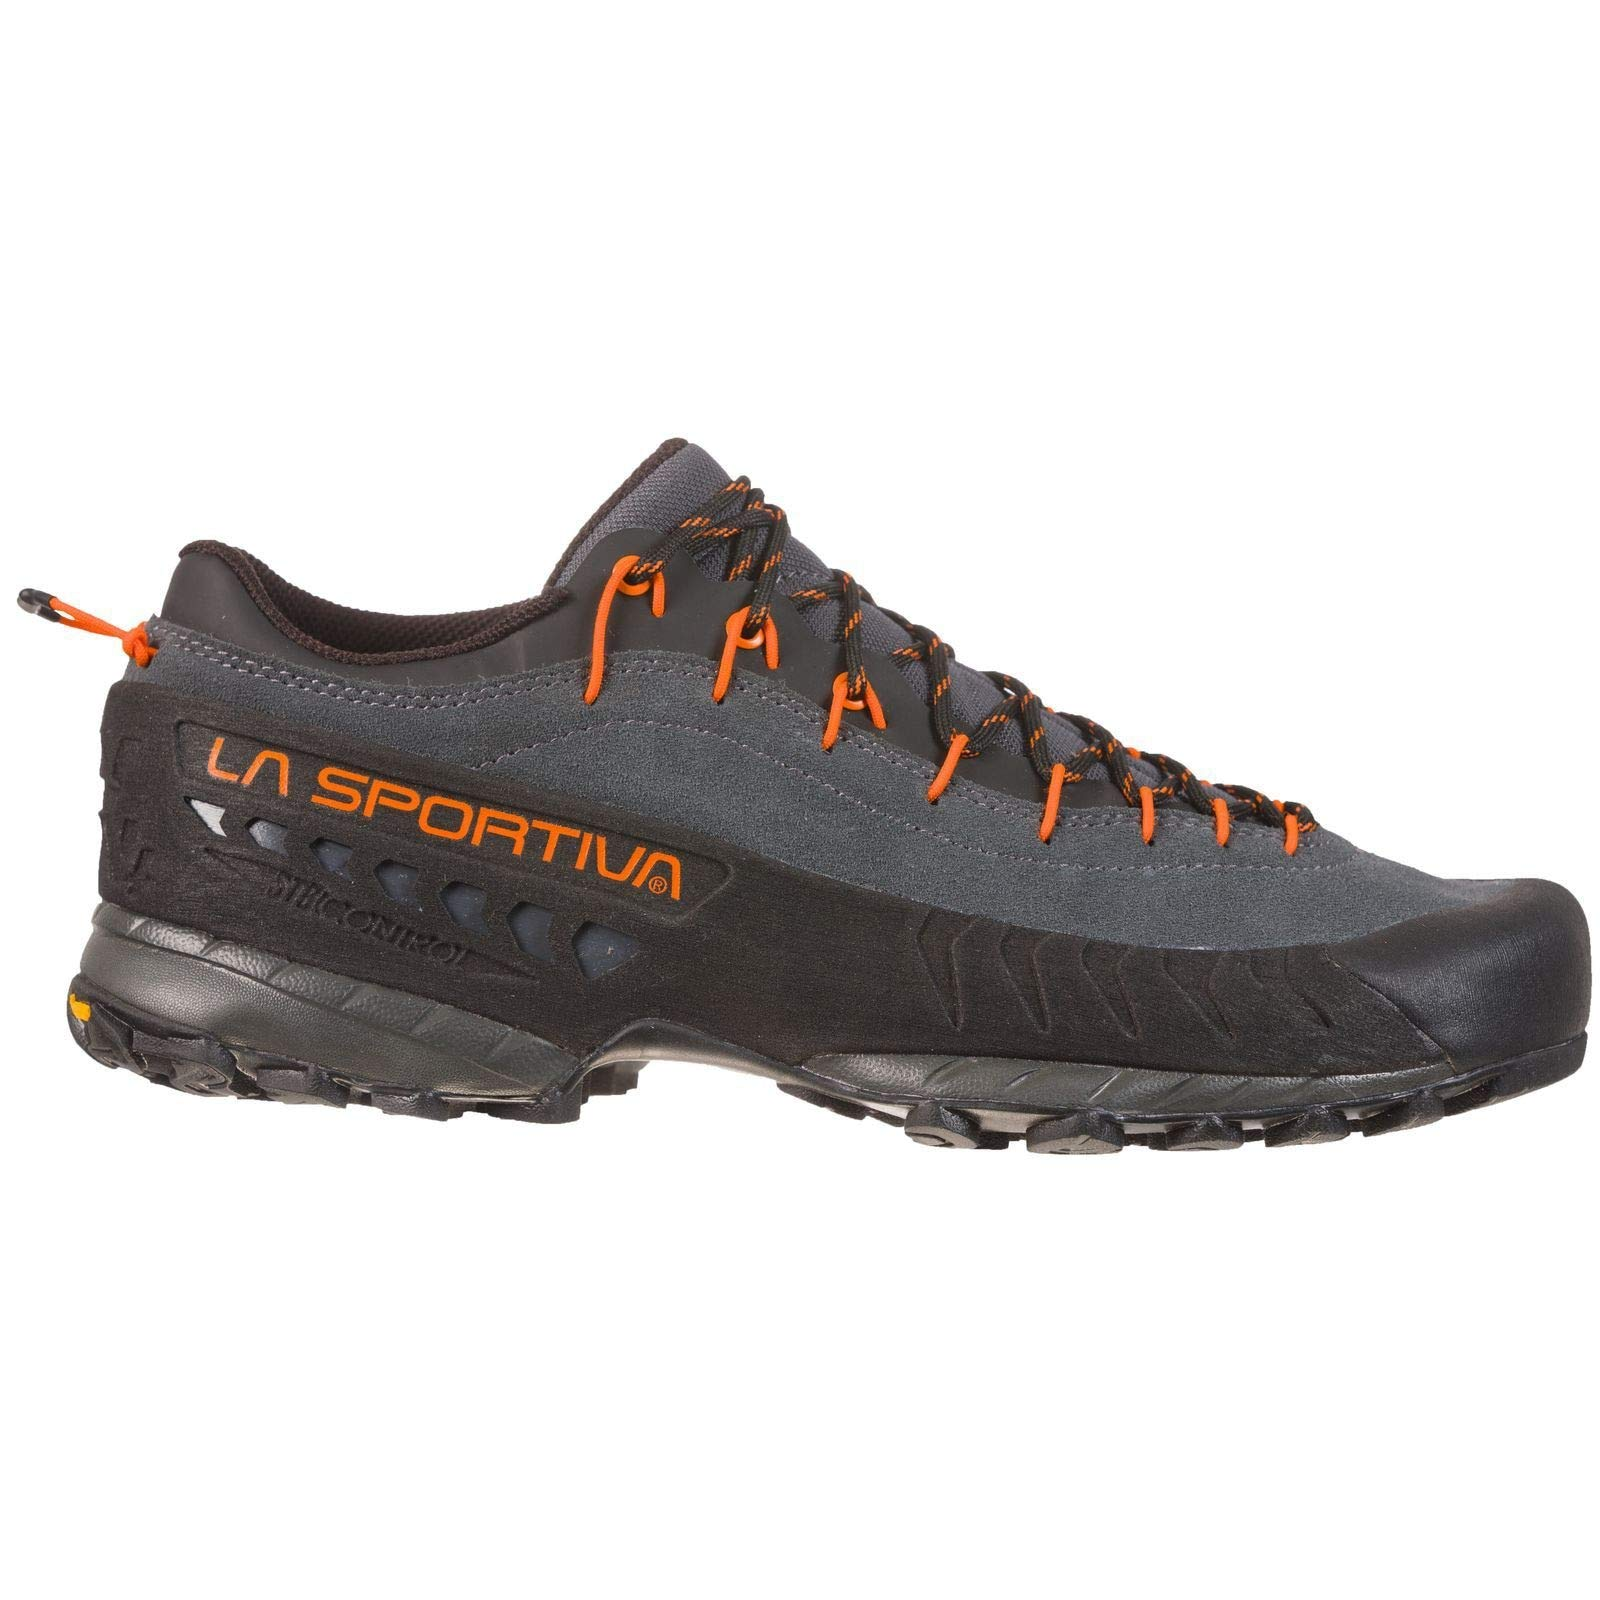 La Sportiva TX4 Approach Shoe, Carbon/Flame, 45.5 by La Sportiva